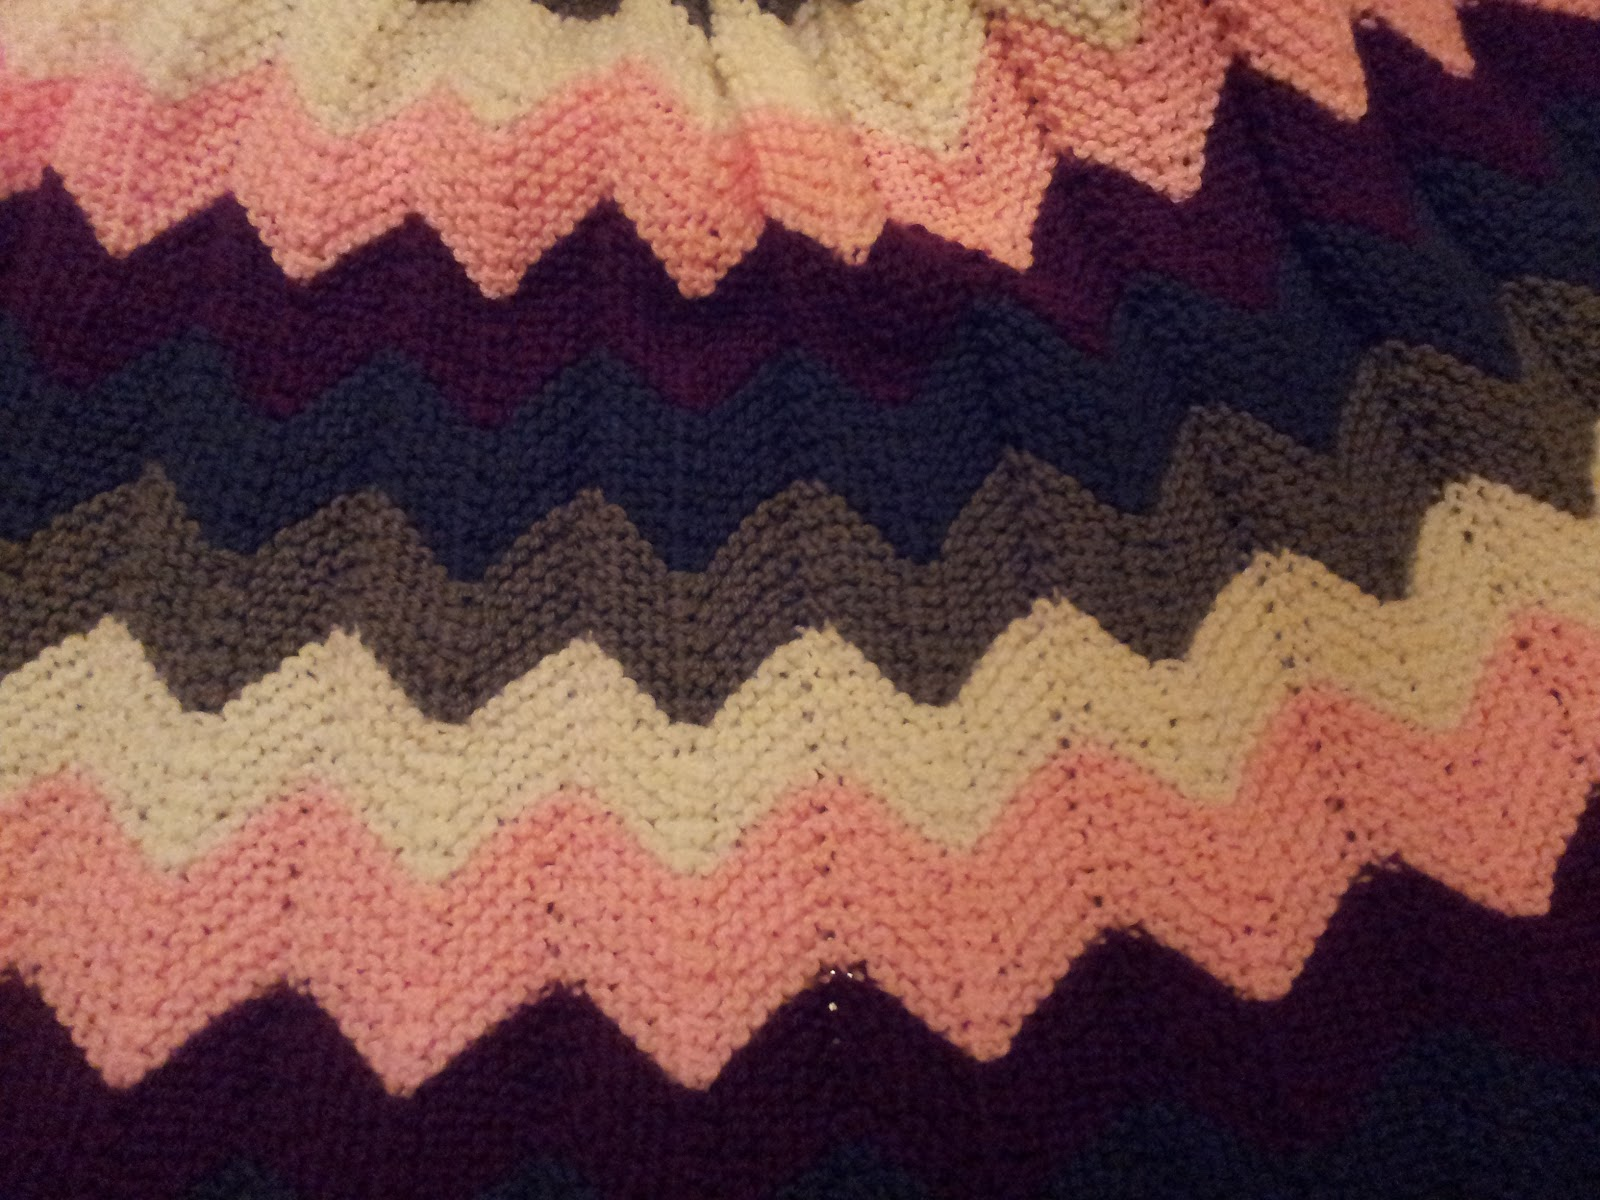 70159100 in addition 10 Free Knitted Scarf Patterns besides 17 Easy Ripple Crochet Blankets To Make To Brighten Any Room additionally Crochet Afghans  munity Board besides Awesome Crochet Blankets With Tutorials And Patterns. on feather and fan crochet pattern